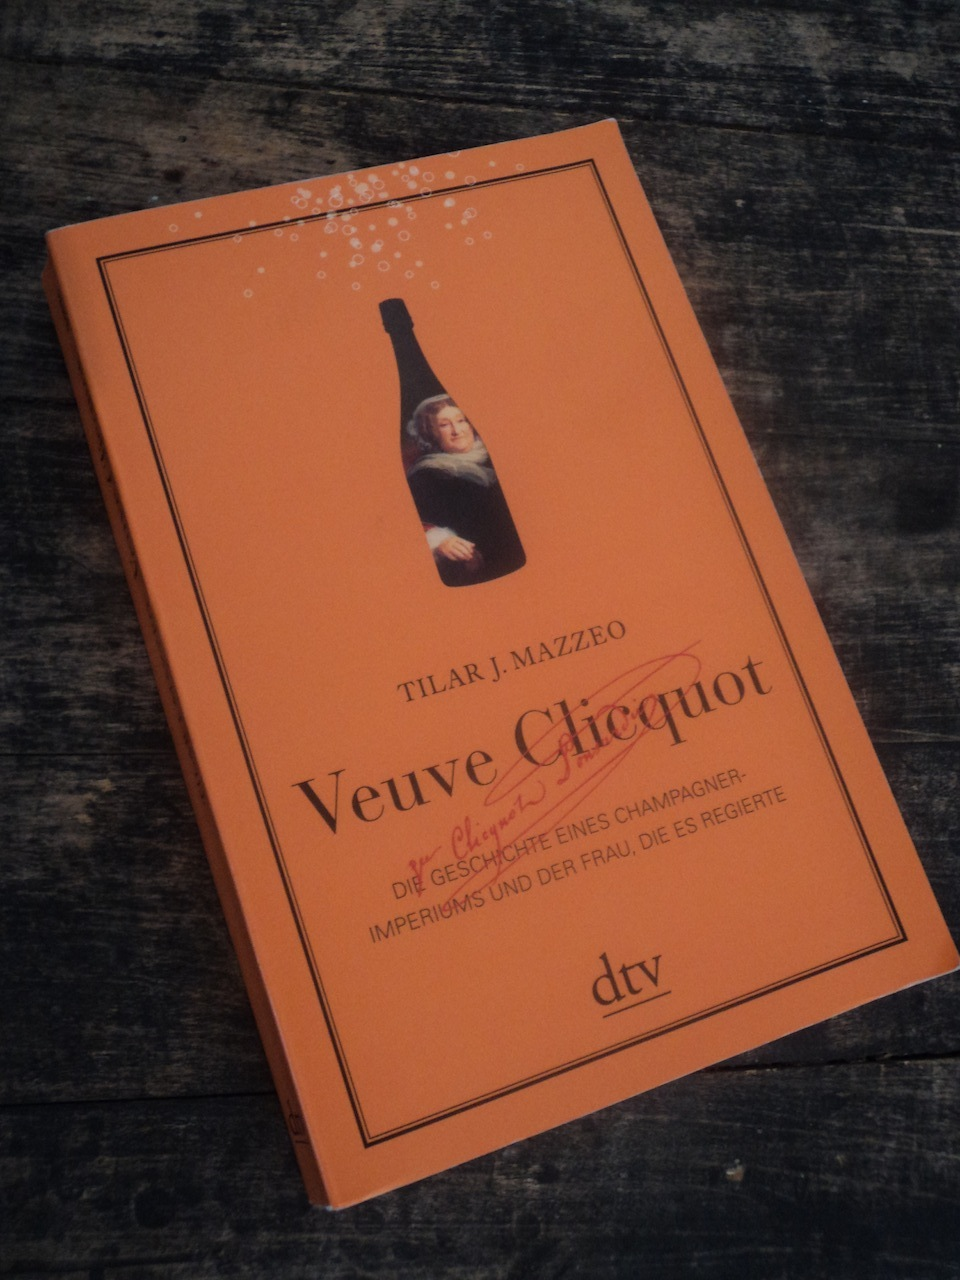 The Story of Veuve Cliquot